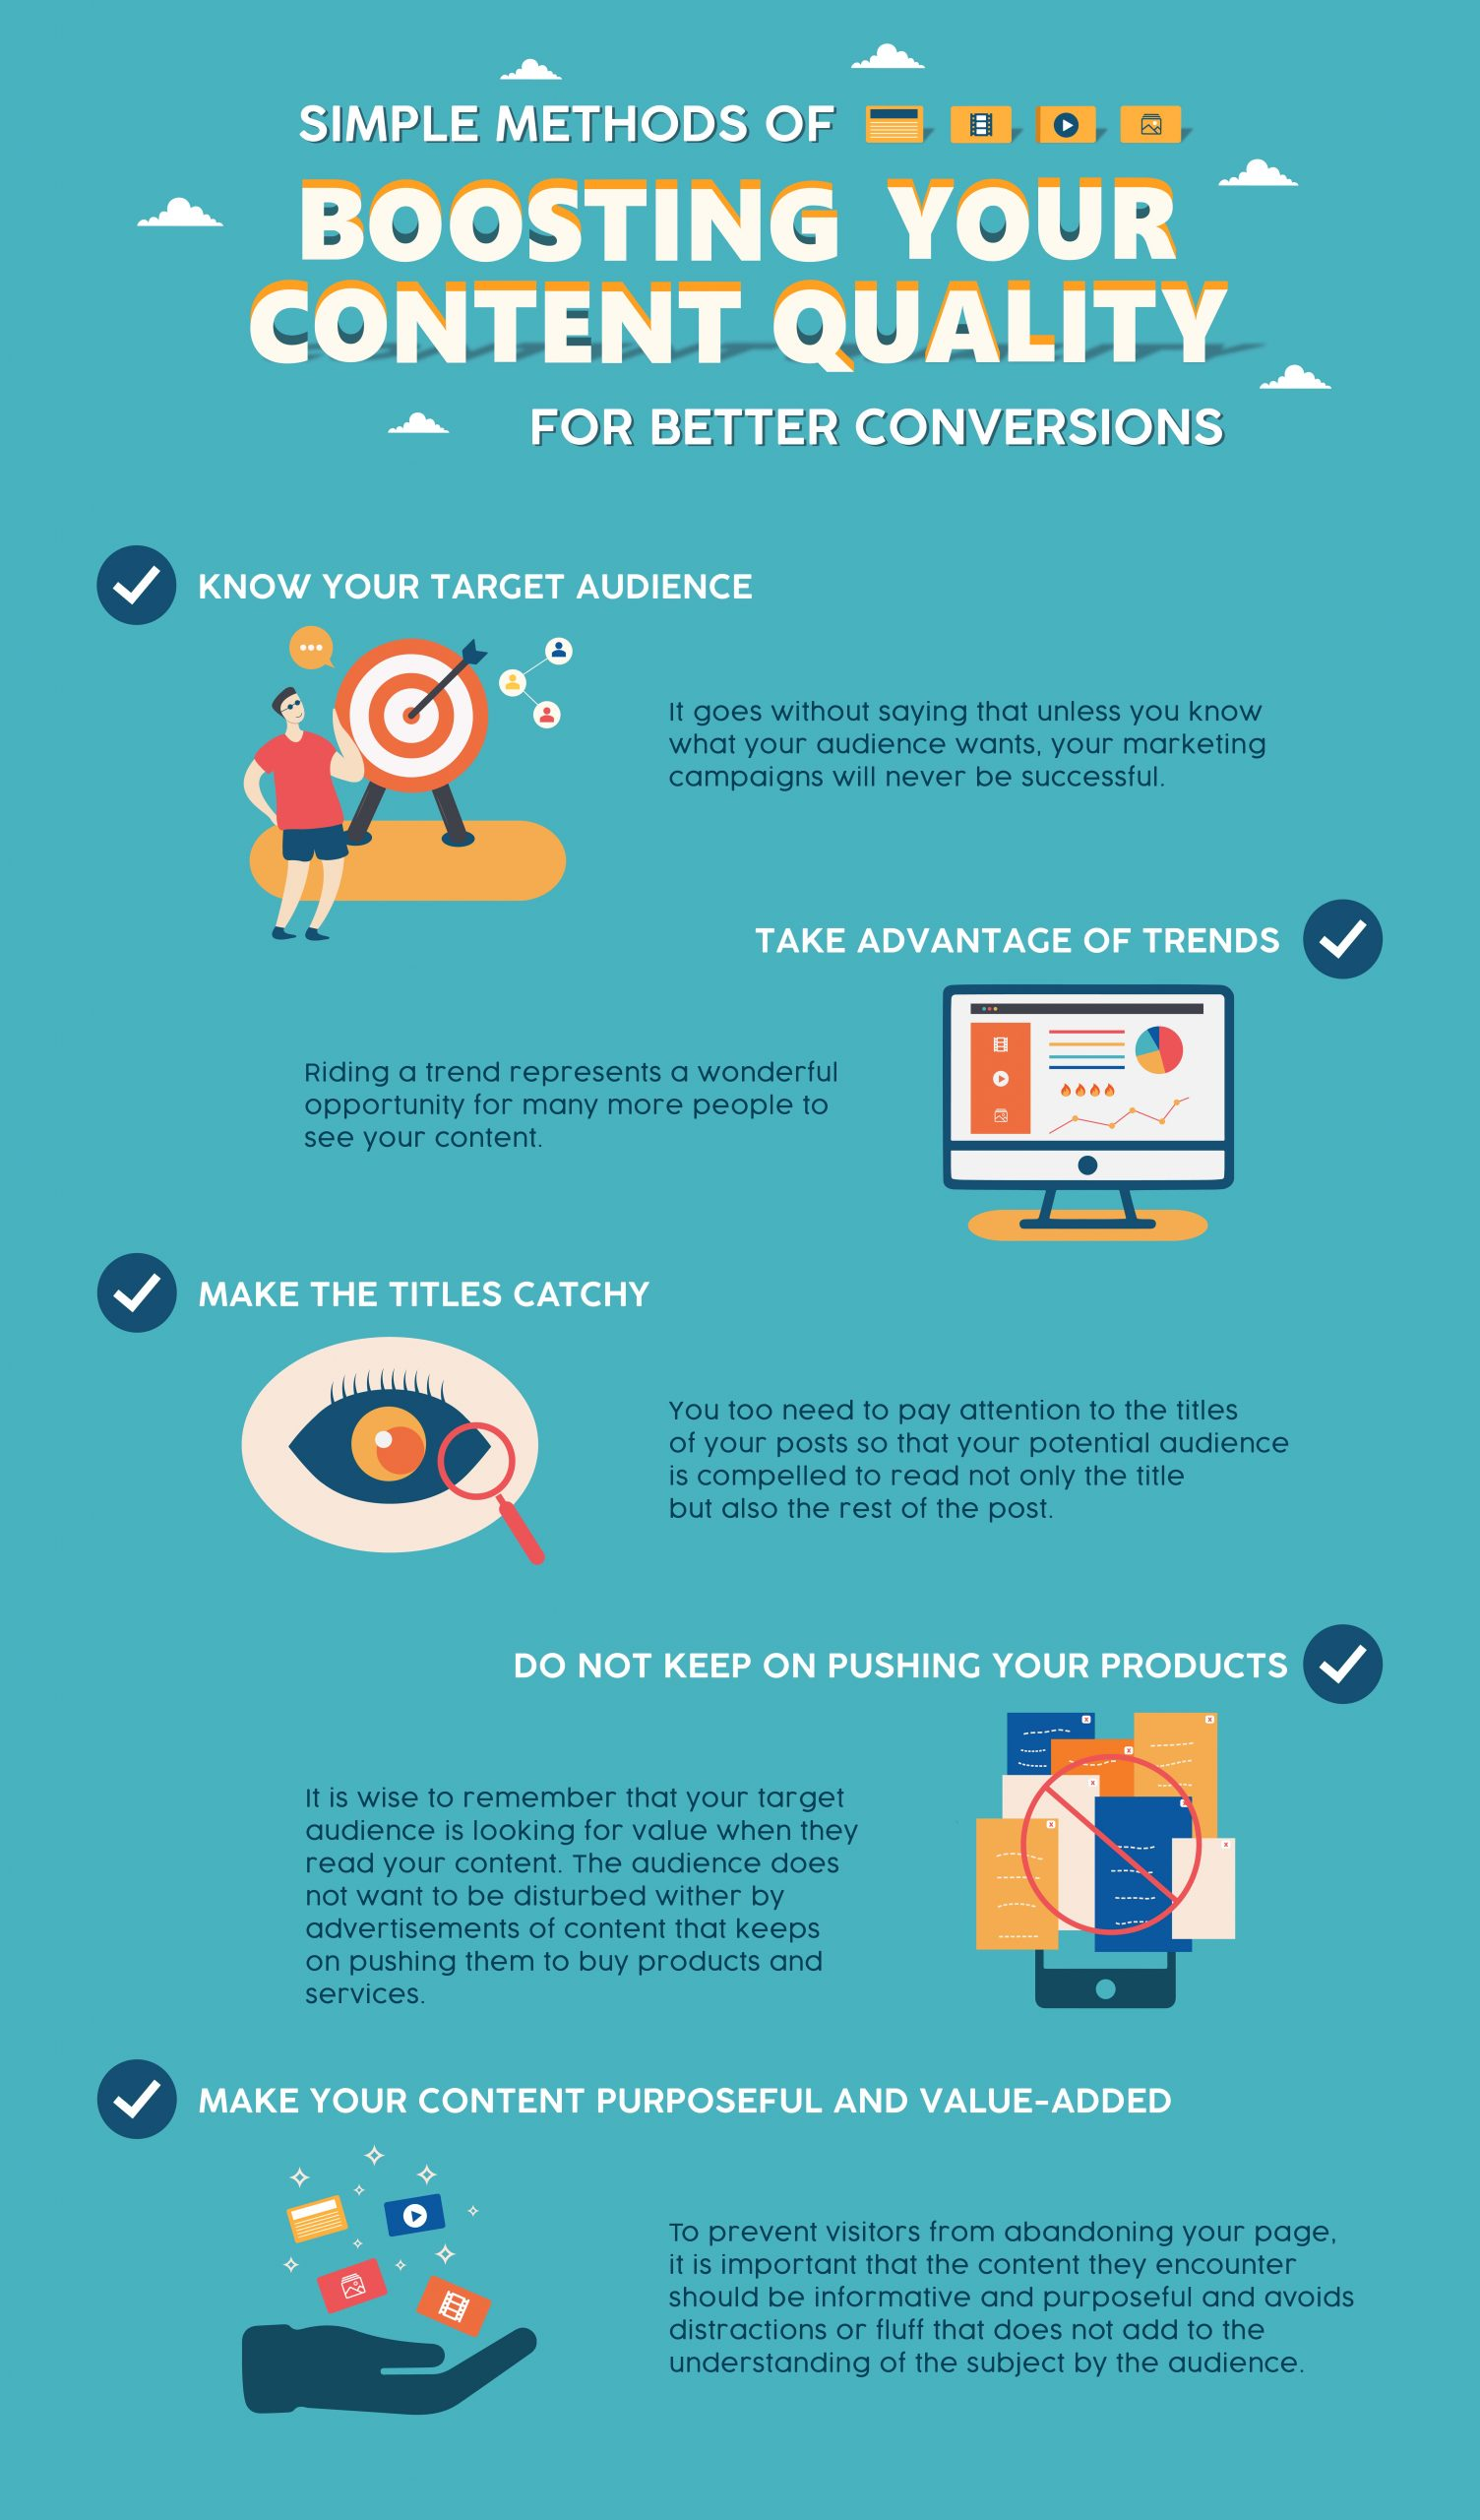 How to boost your content quality [infographic]